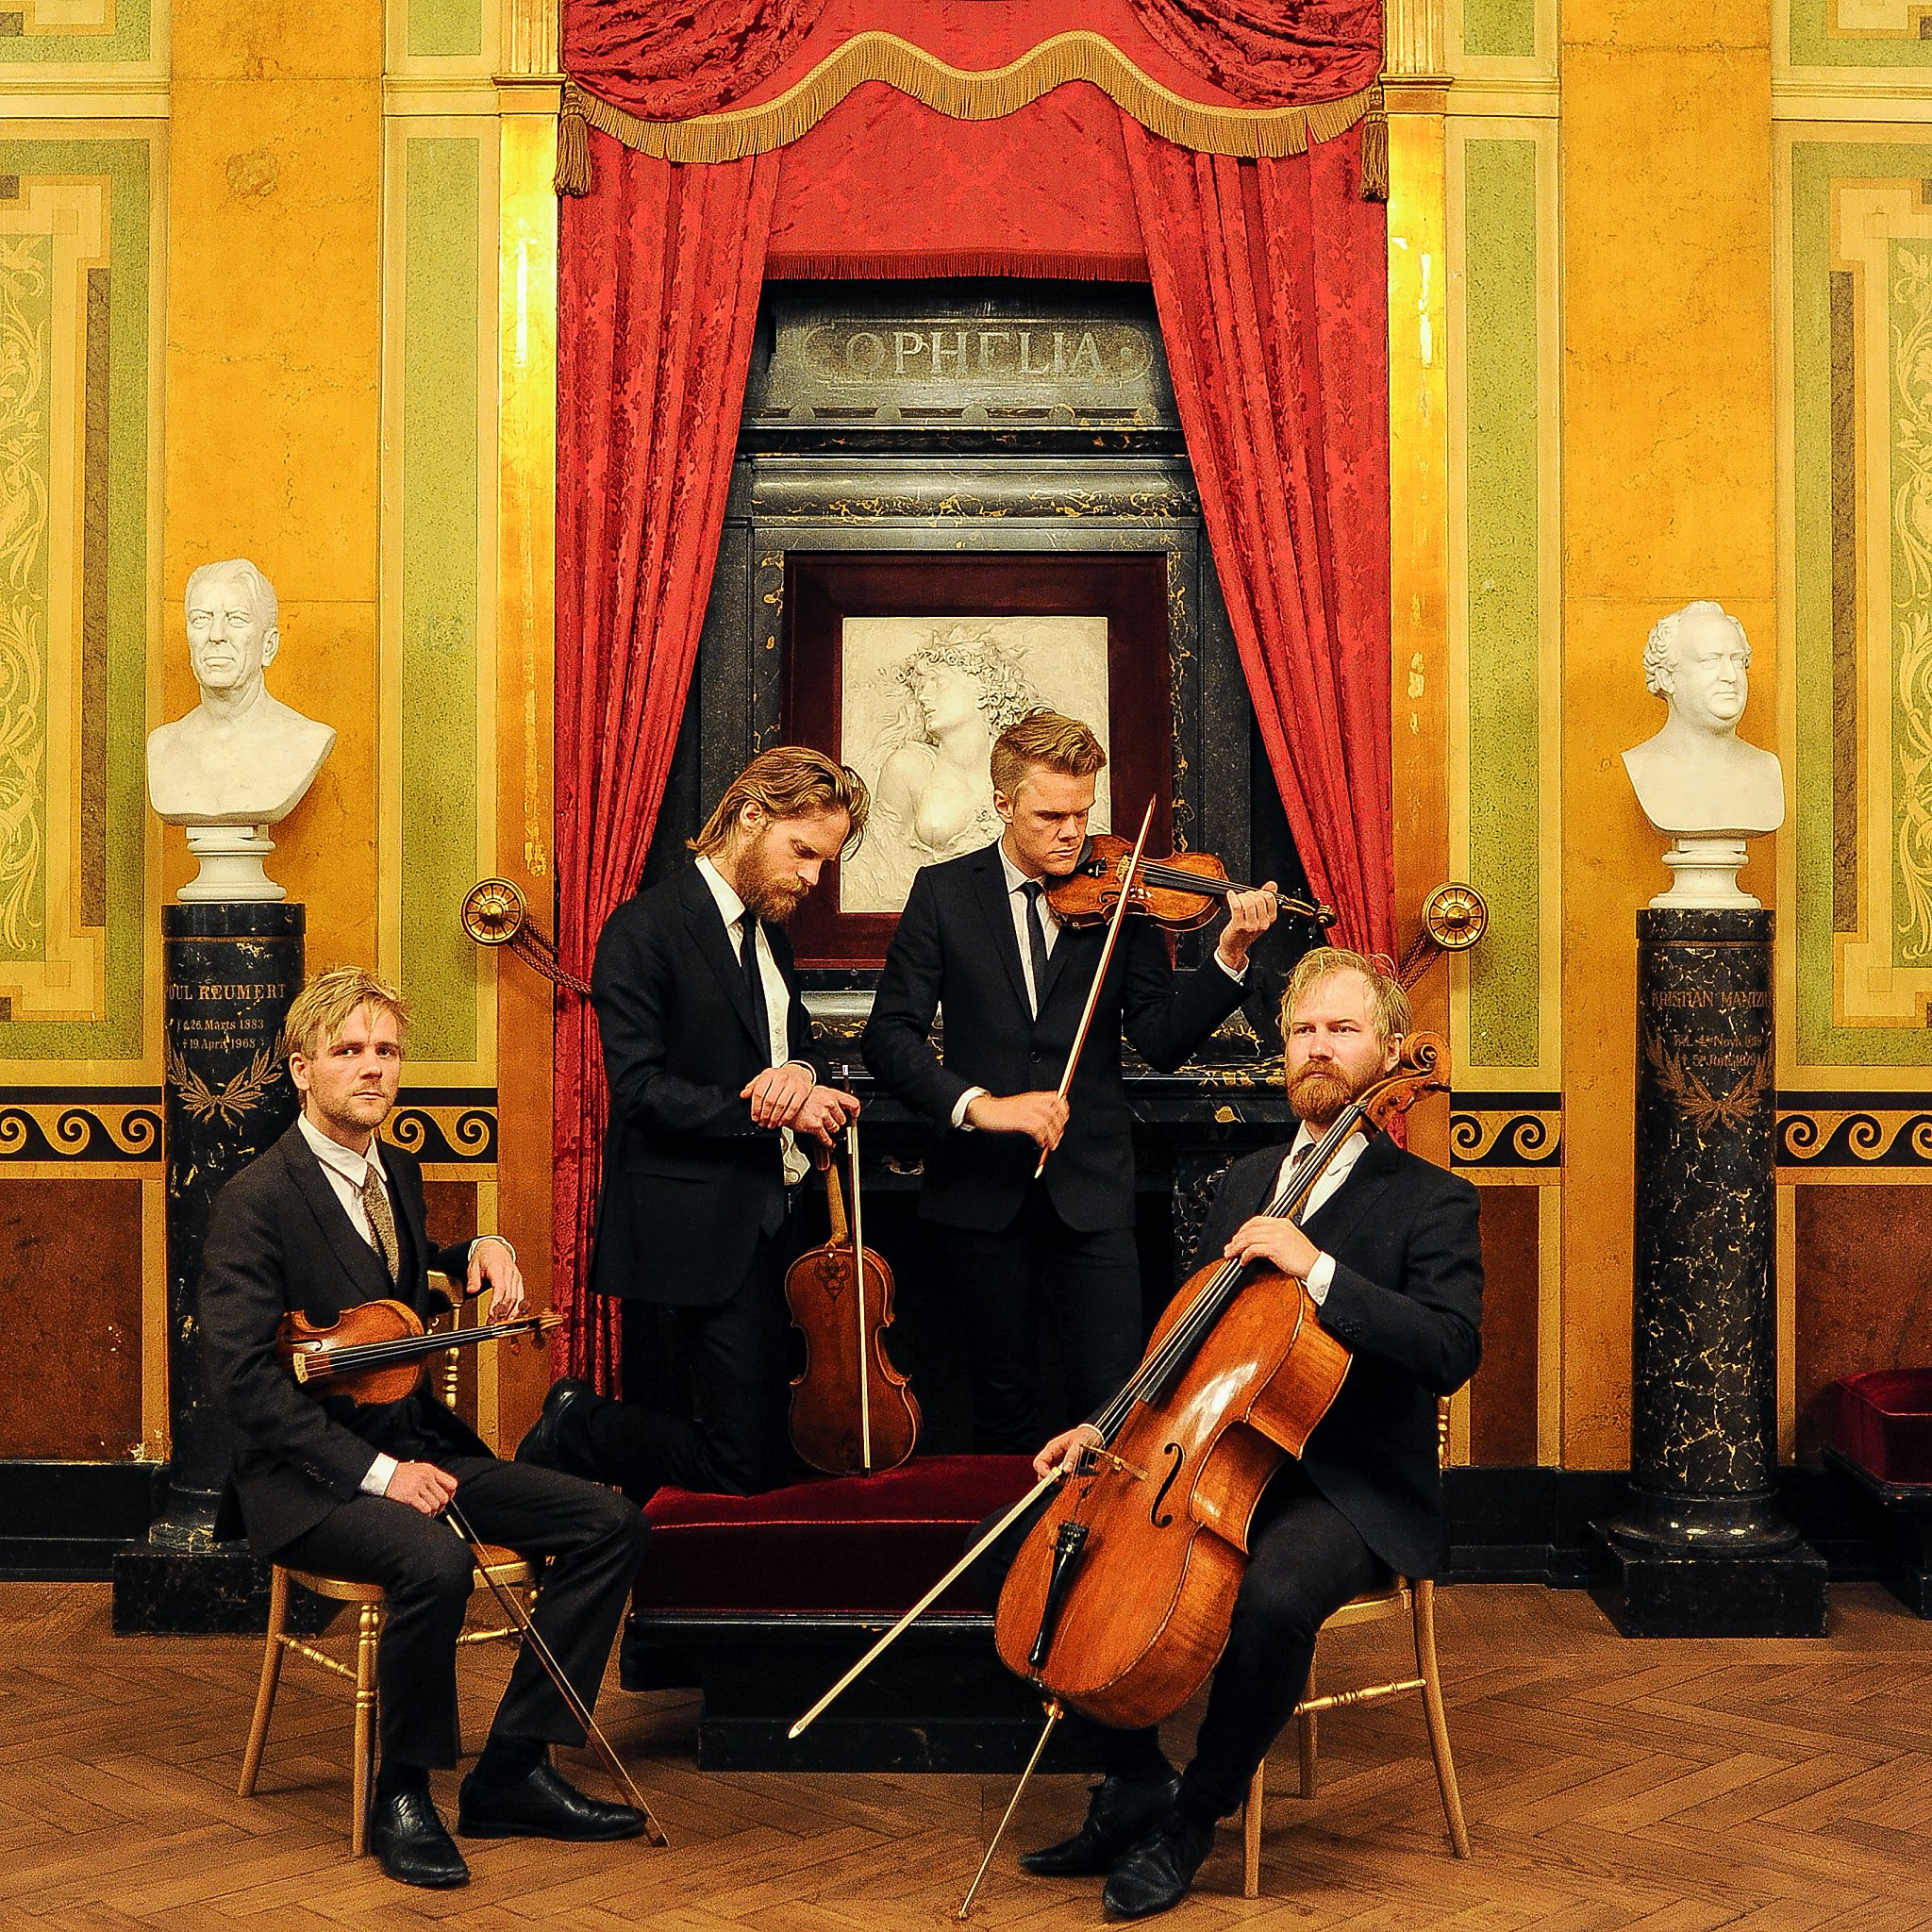 Danish String Quartet rewards its patrons with rugged beauty